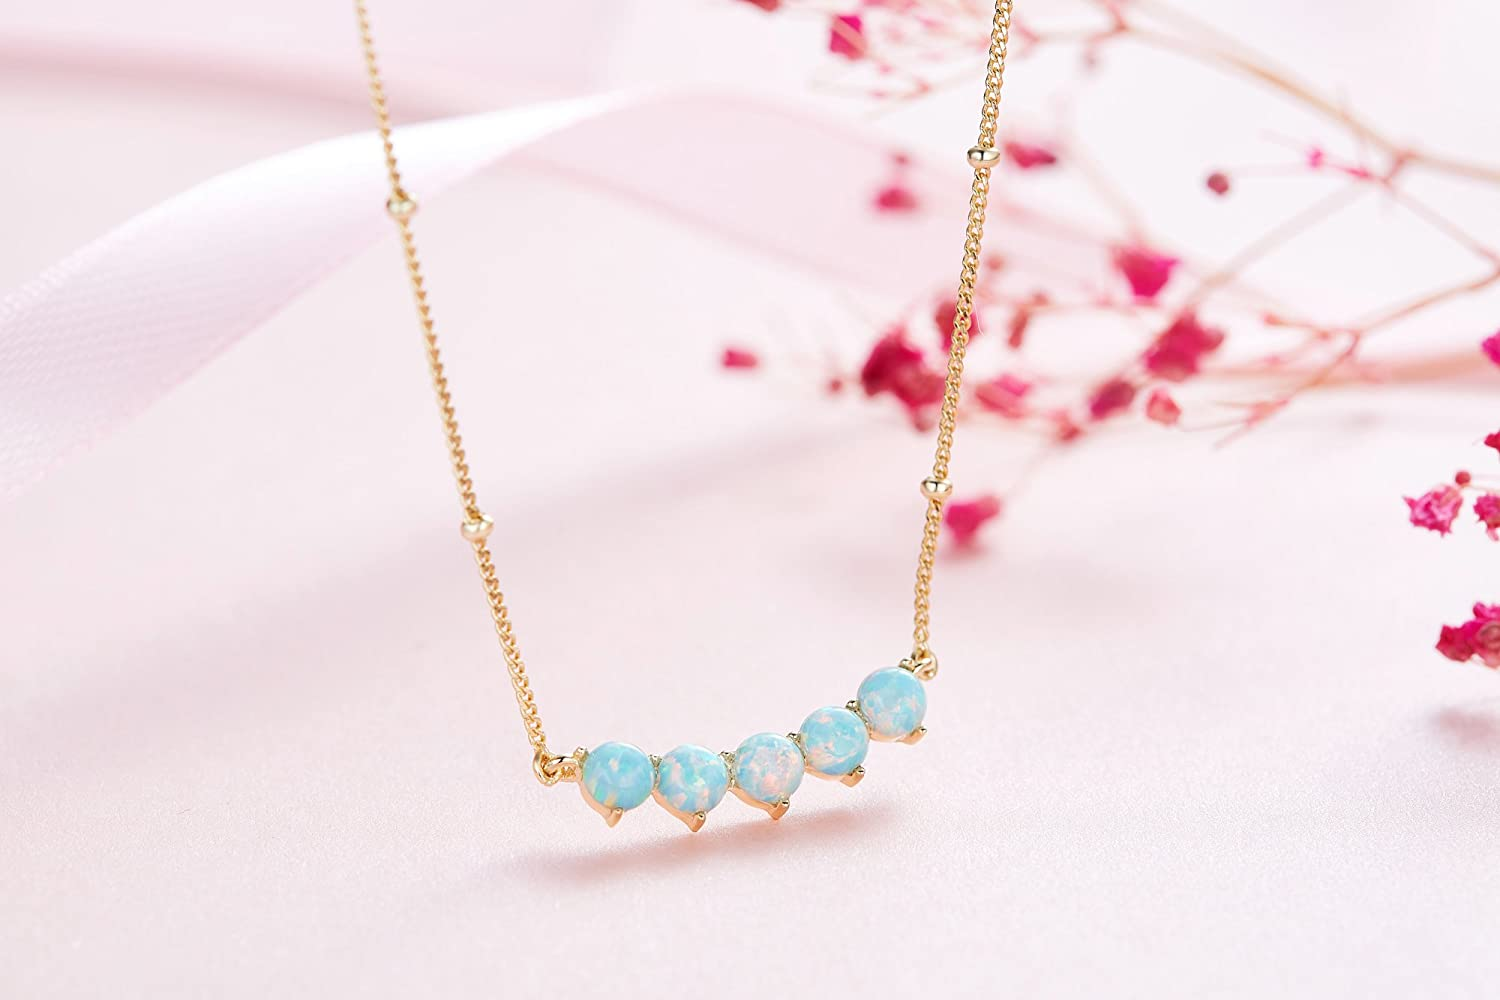 Vogzone Created Opal Pendant Necklace for Women Rose Gold Plated Clavicle Necklace for Girl Birthday Gift